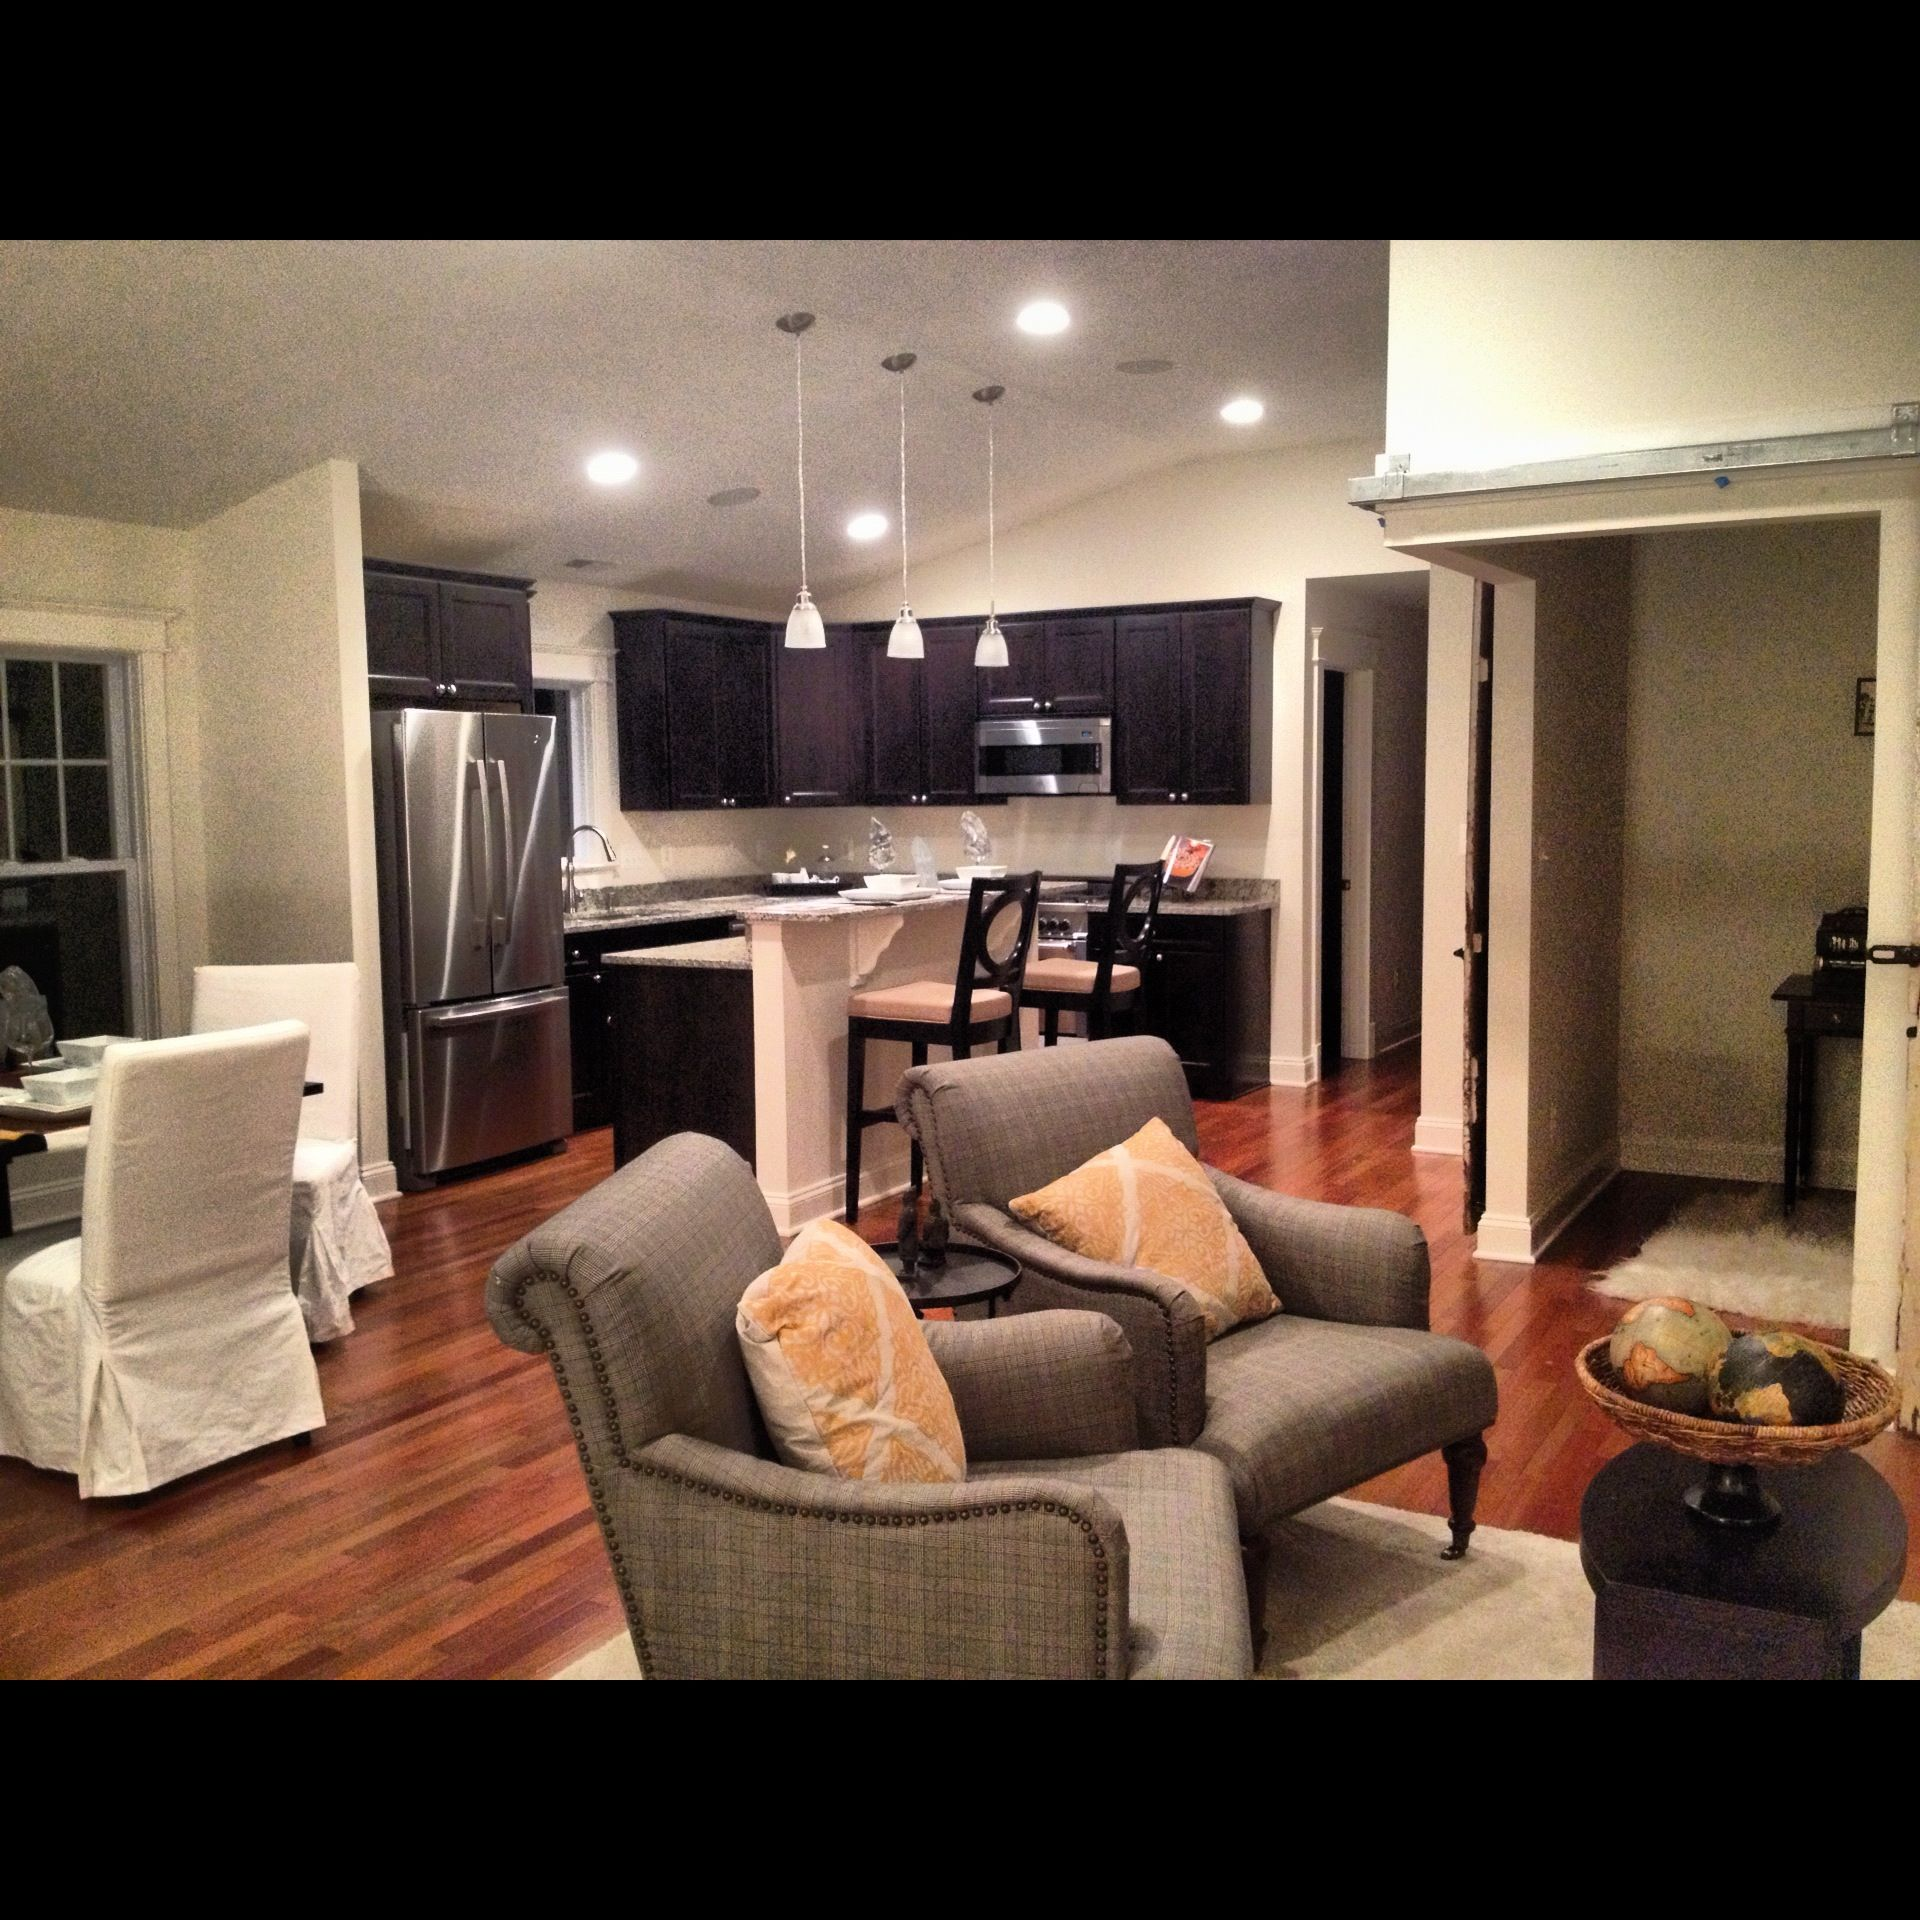 Living And Dining Room Combo: Open Floor Plan With Combo Living Room, Kitchen And Dining